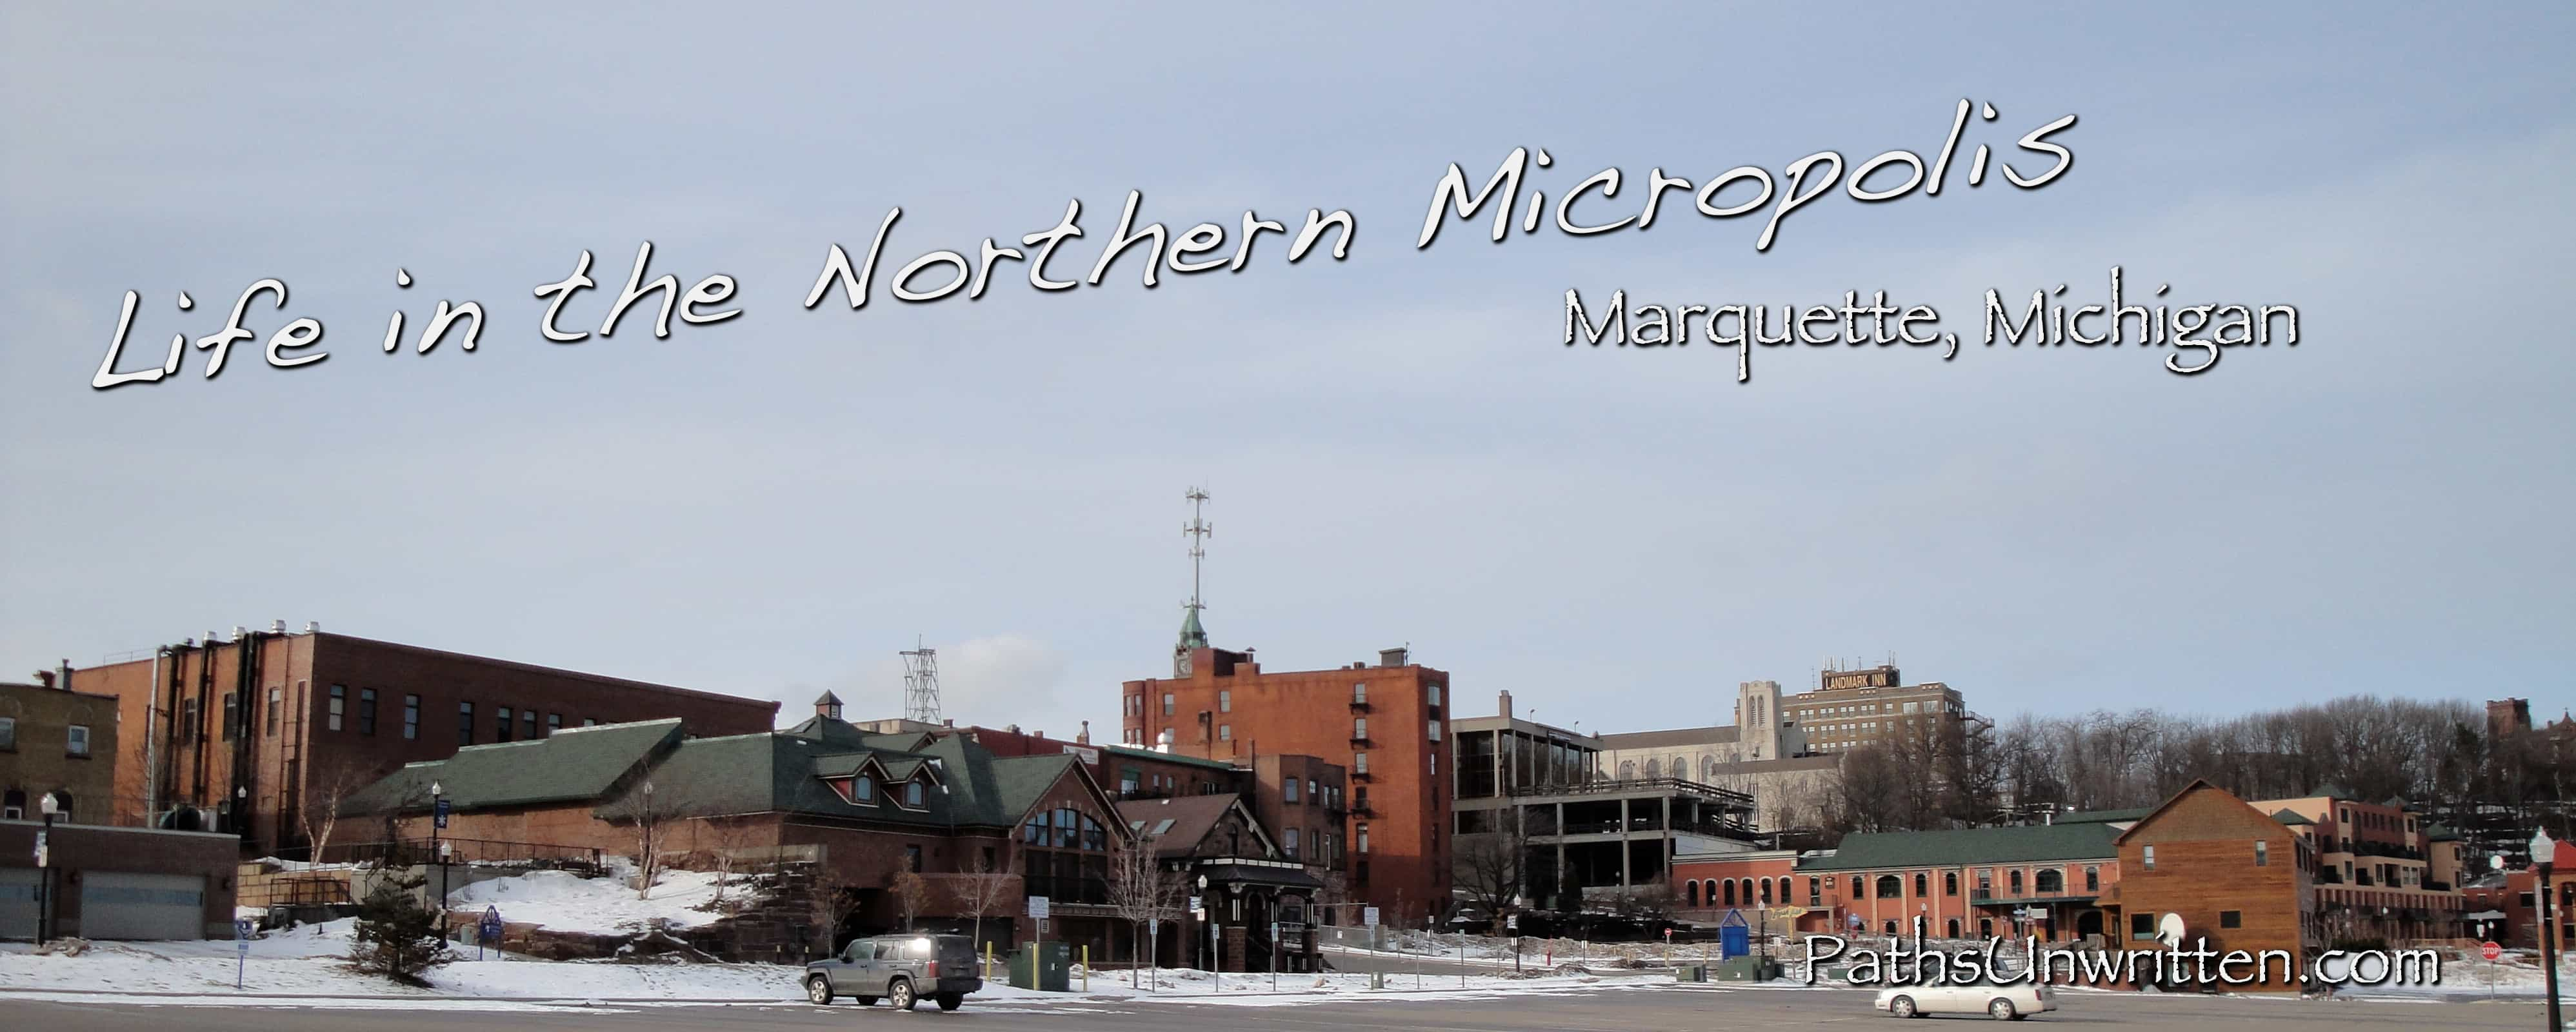 The Marquette Micropolitan Area